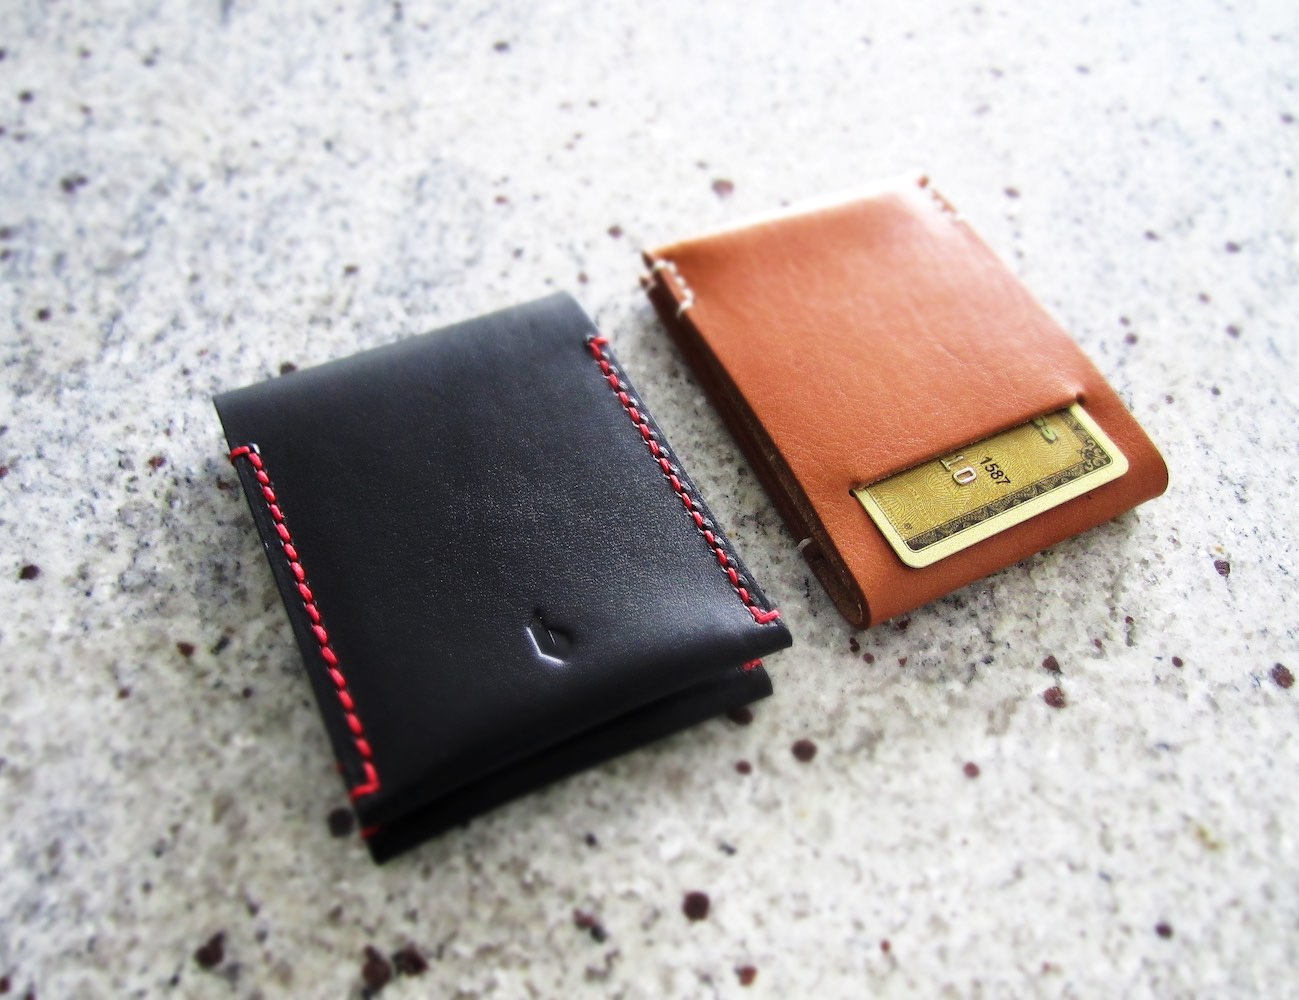 PAALM+Minimalist+Wallet+%26%238211%3B+Available+In+Caramel+And+Dark+Berry+Color